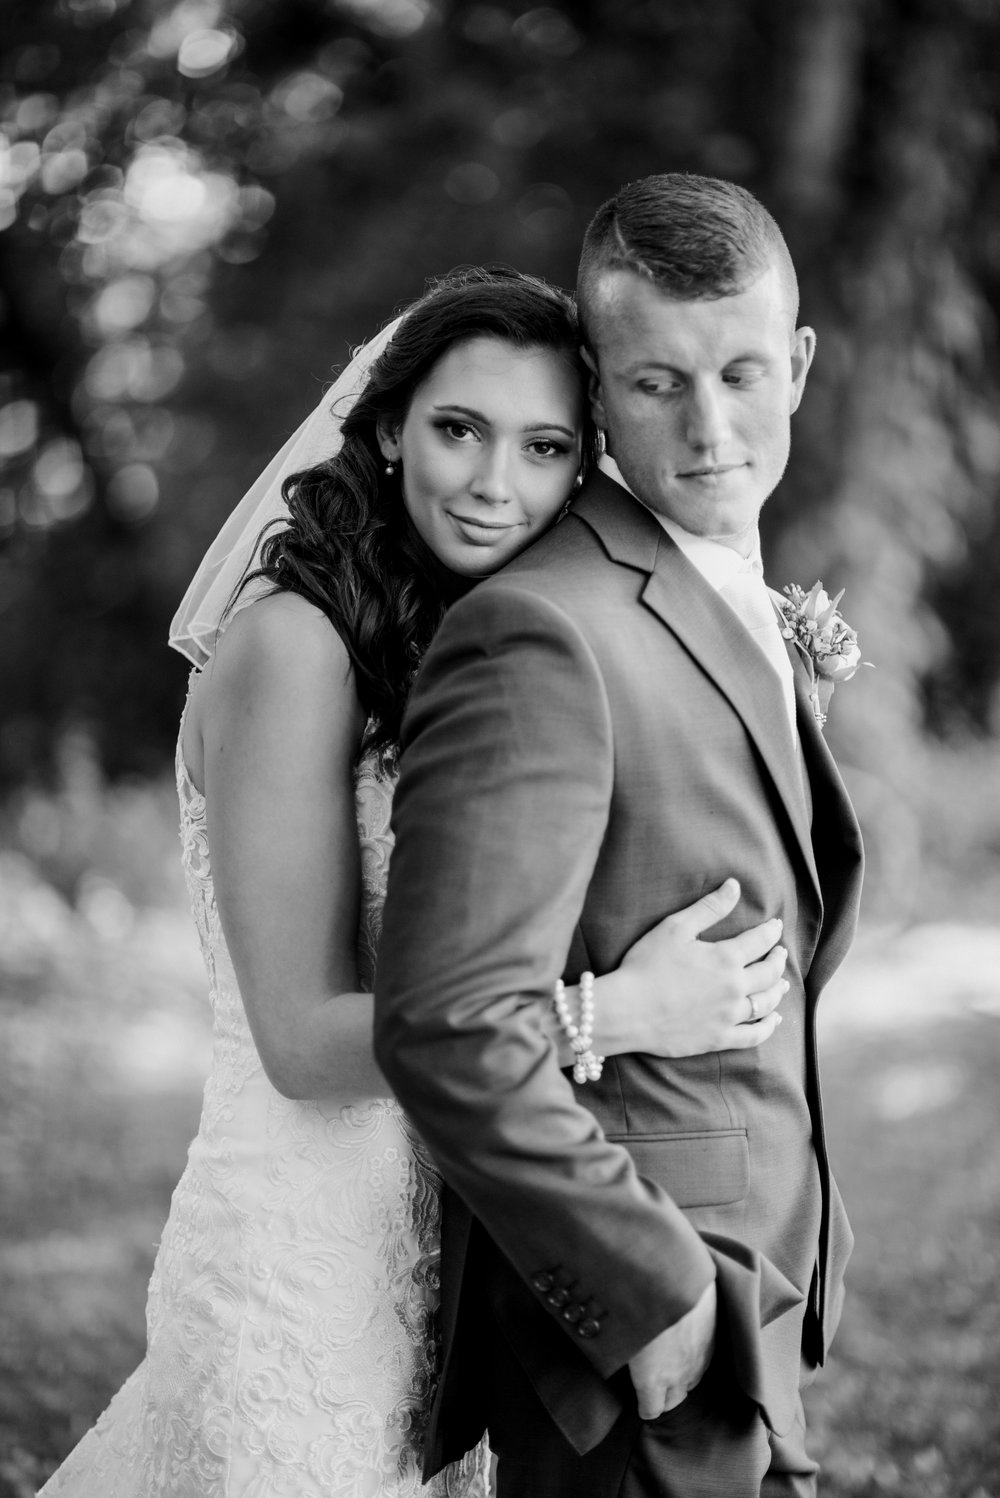 wedding-photographer-lexington-bright-photos